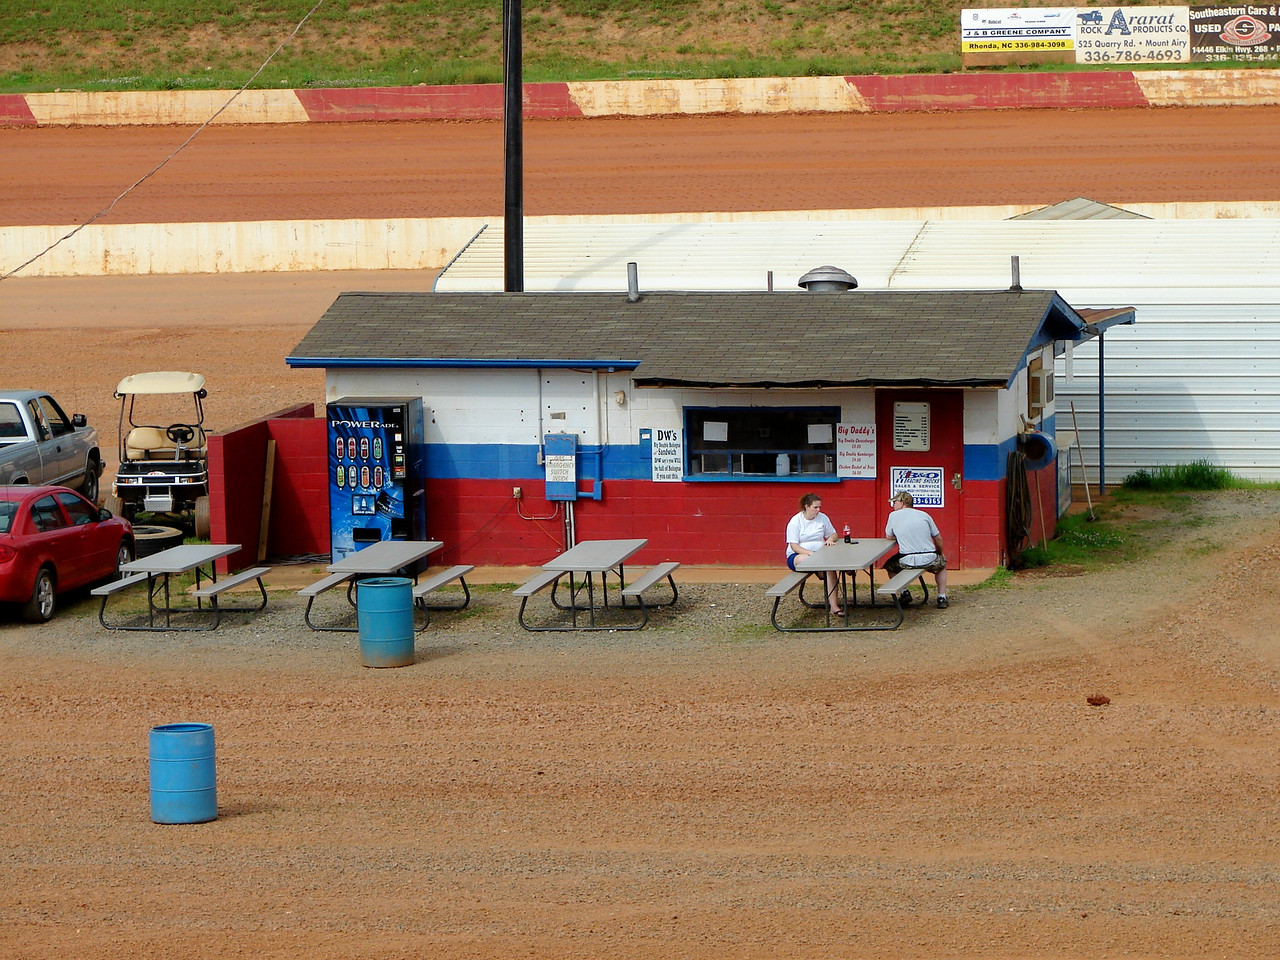 infield food stand